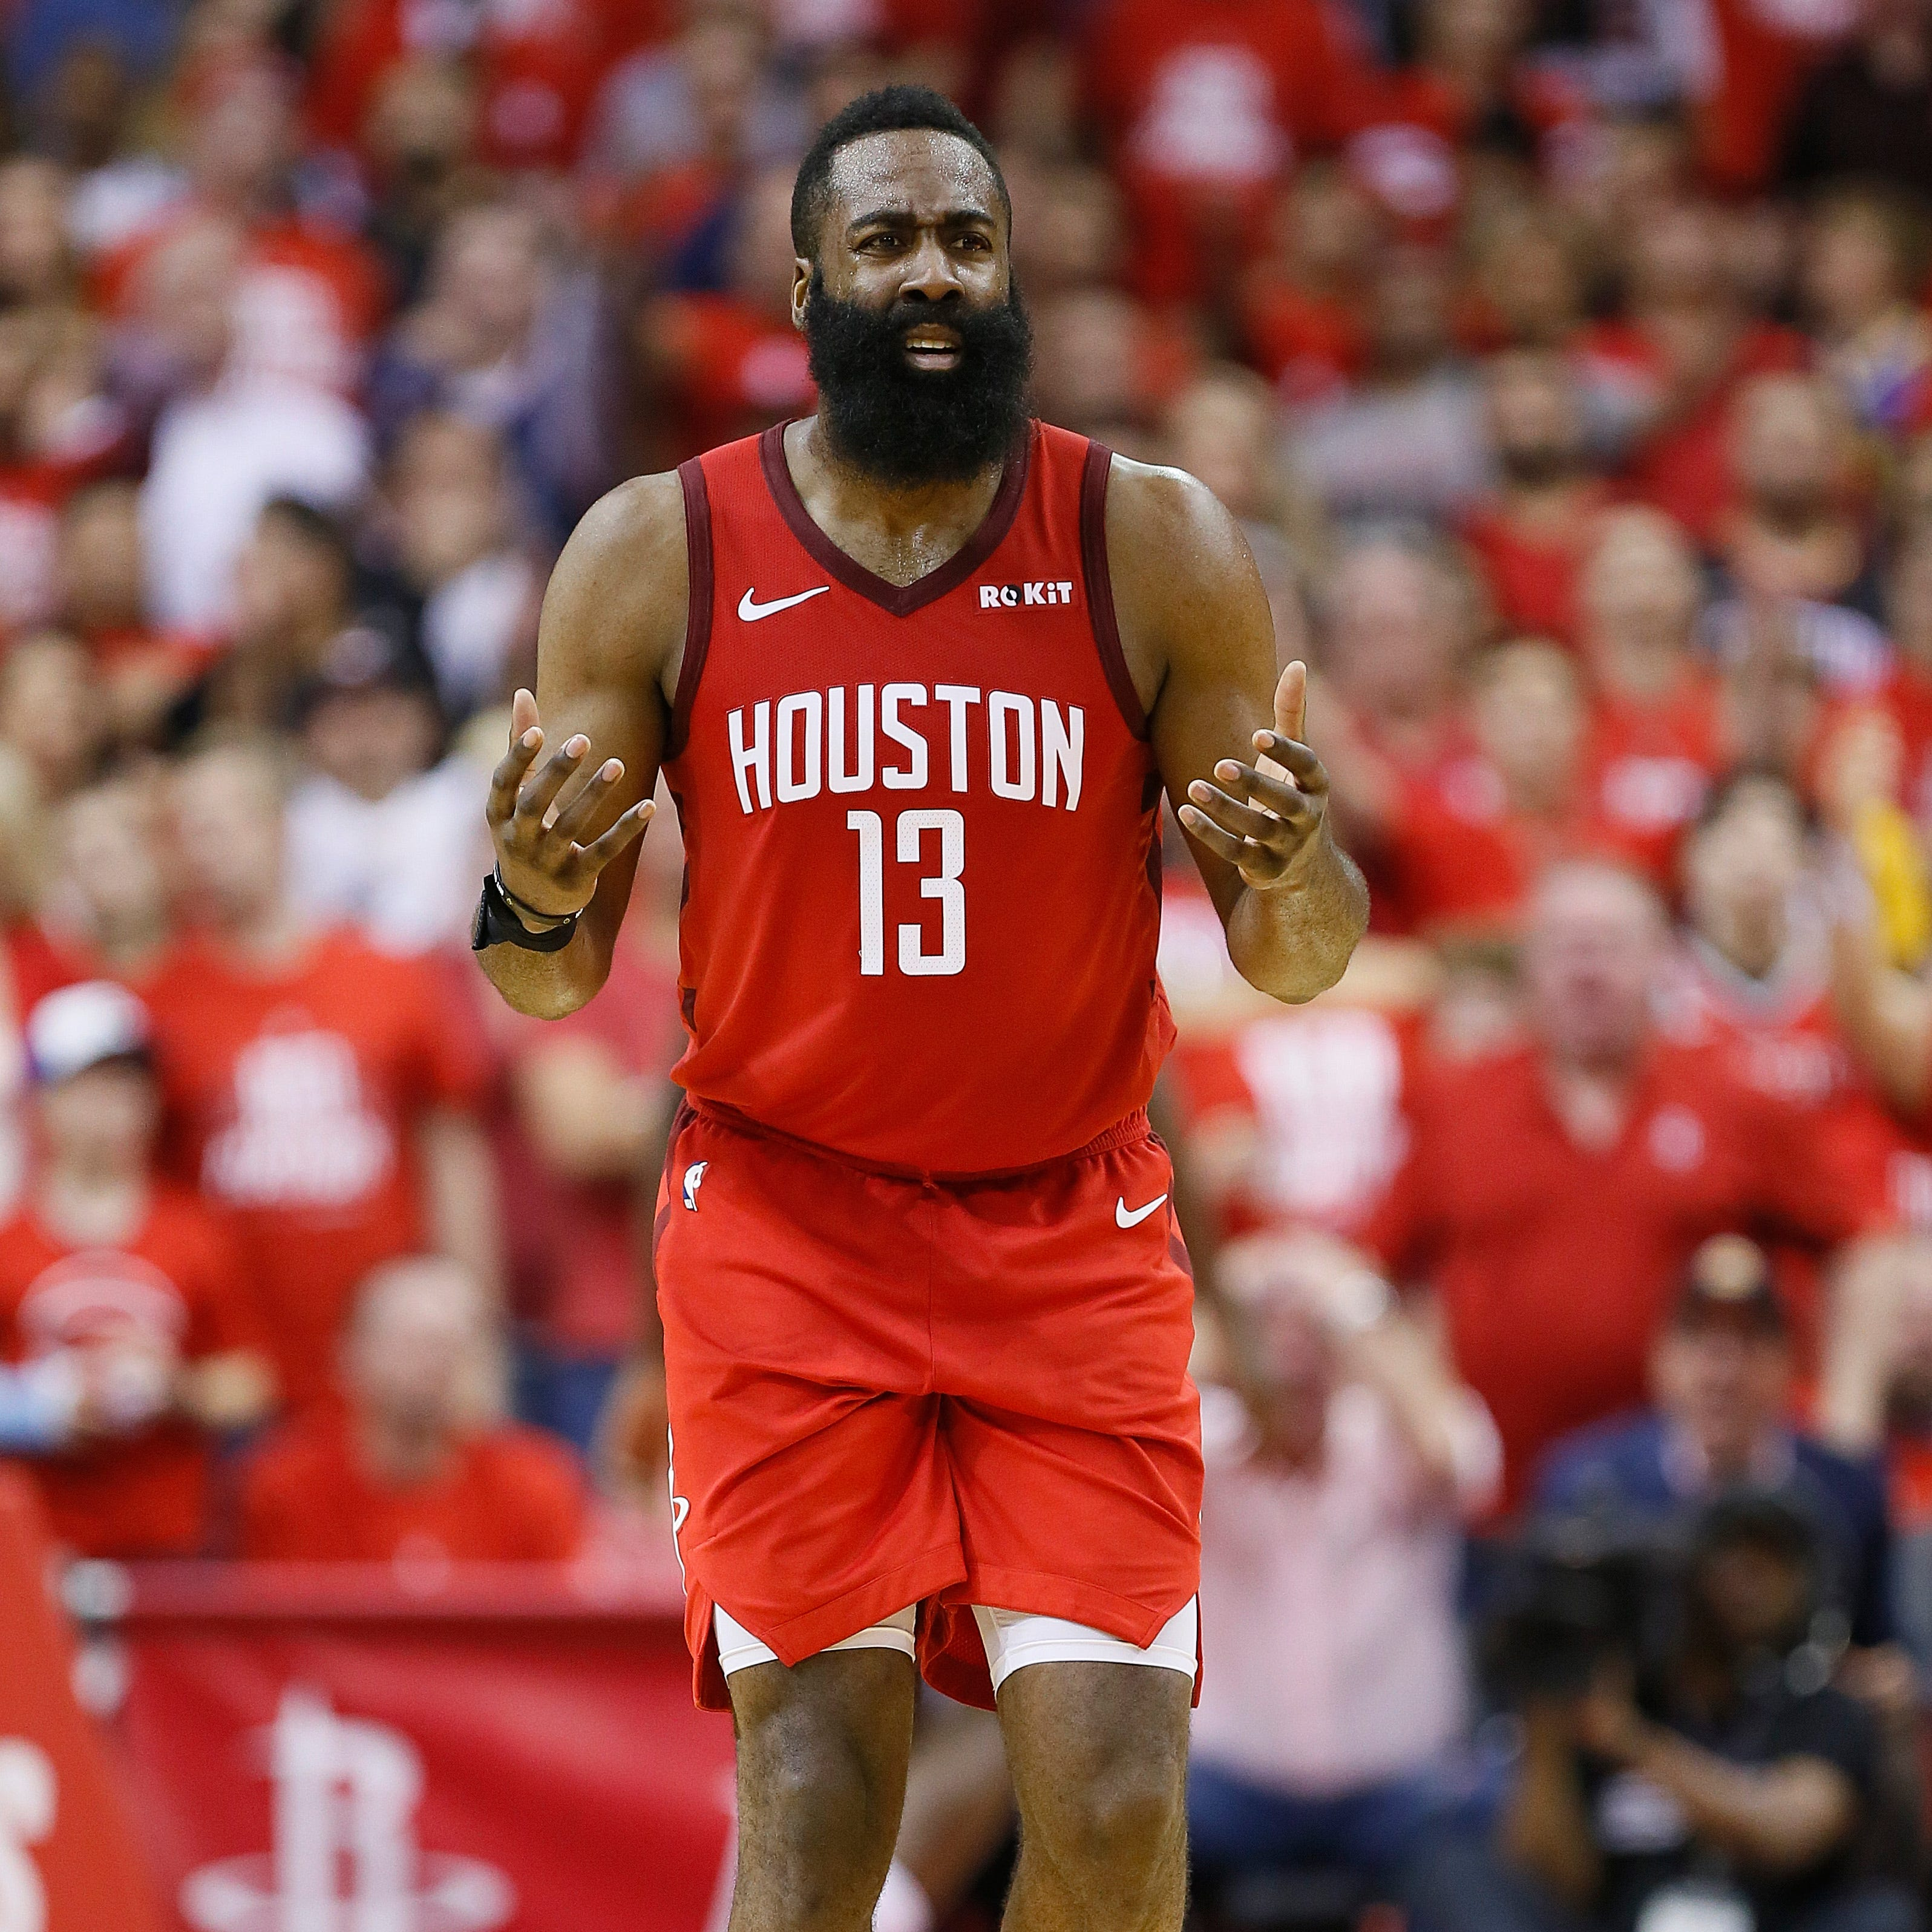 Houston Rockets have official Twitter account suspended